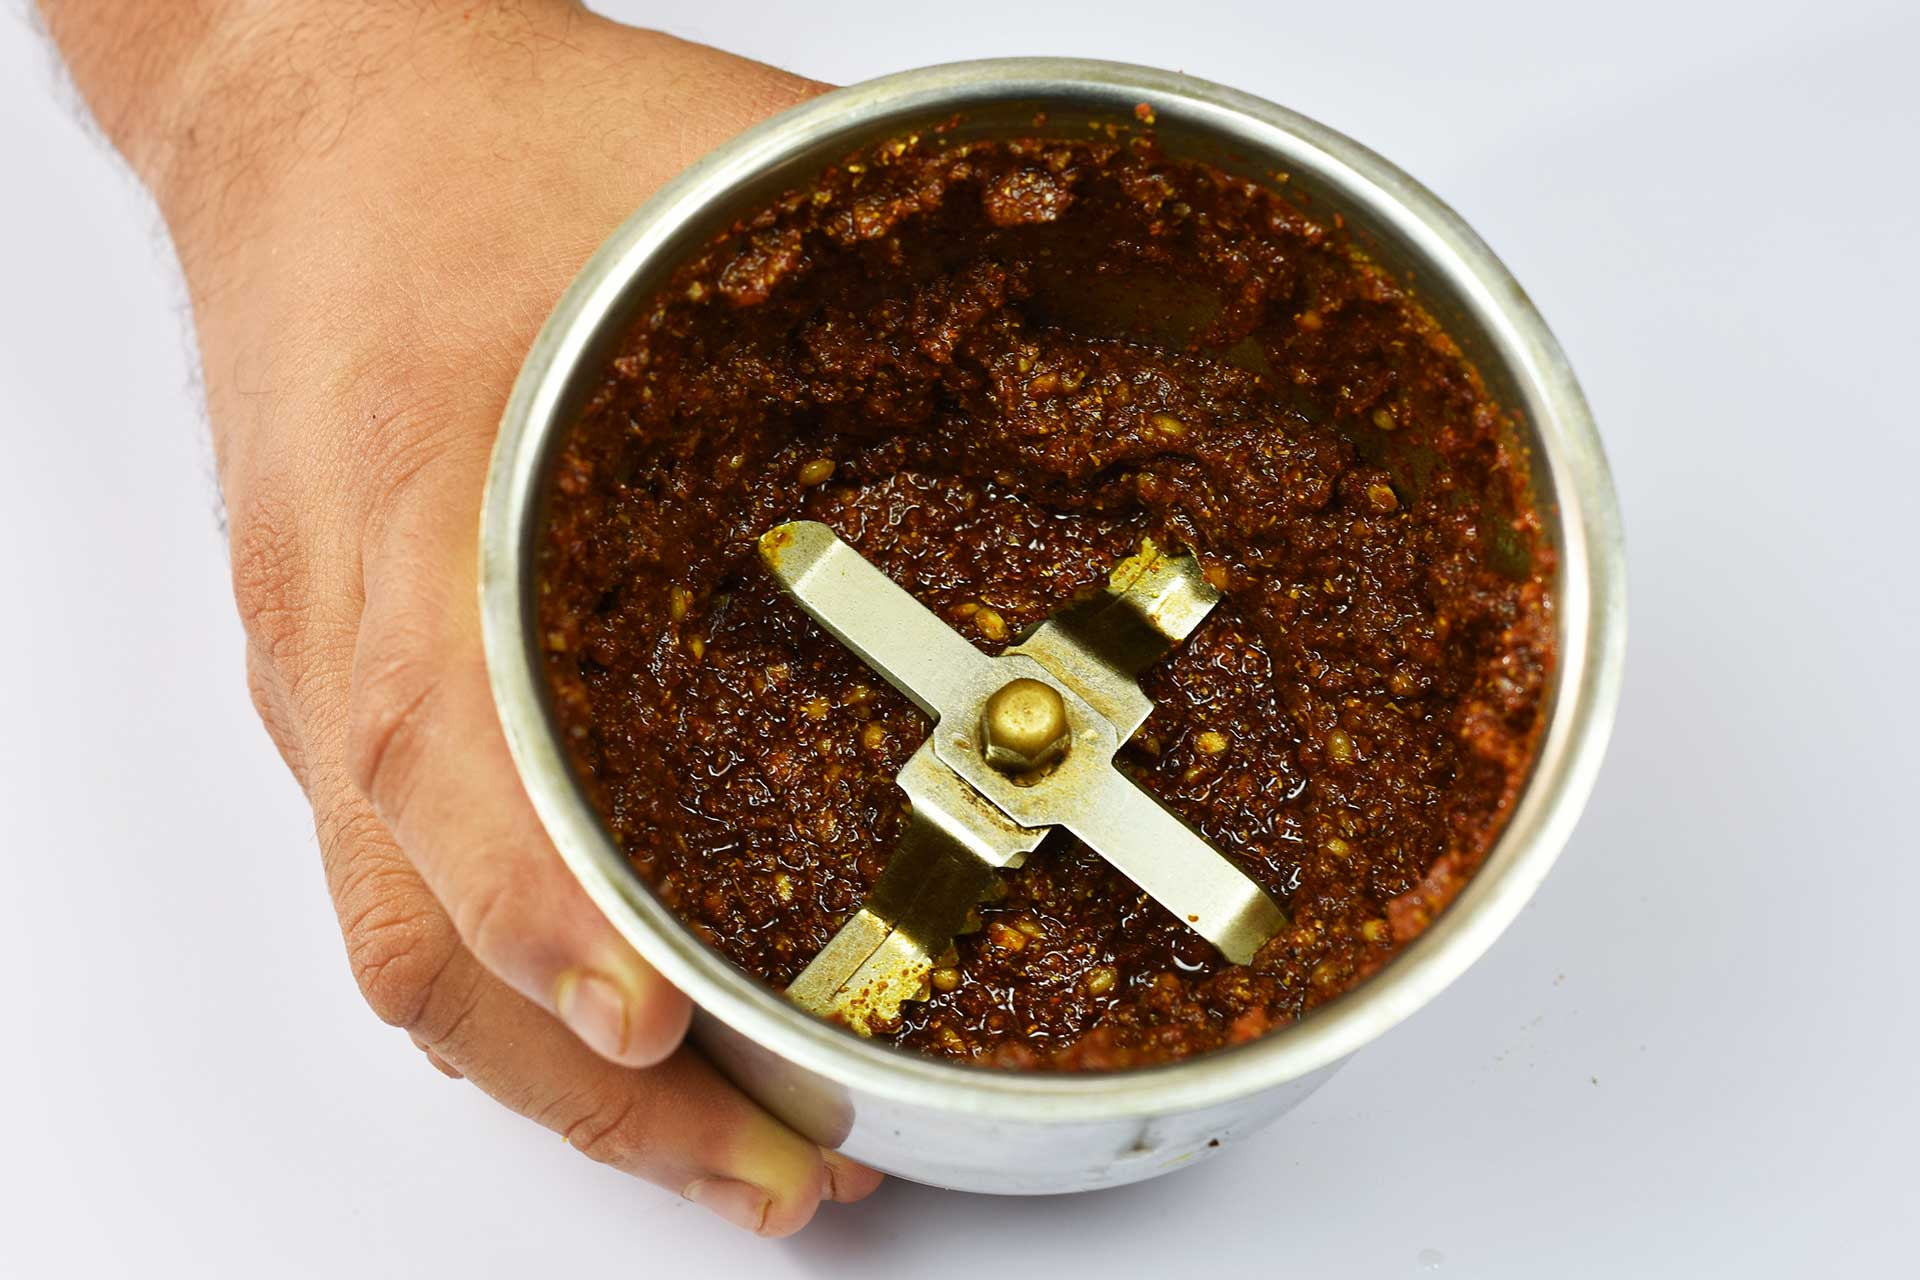 Making the spice paste